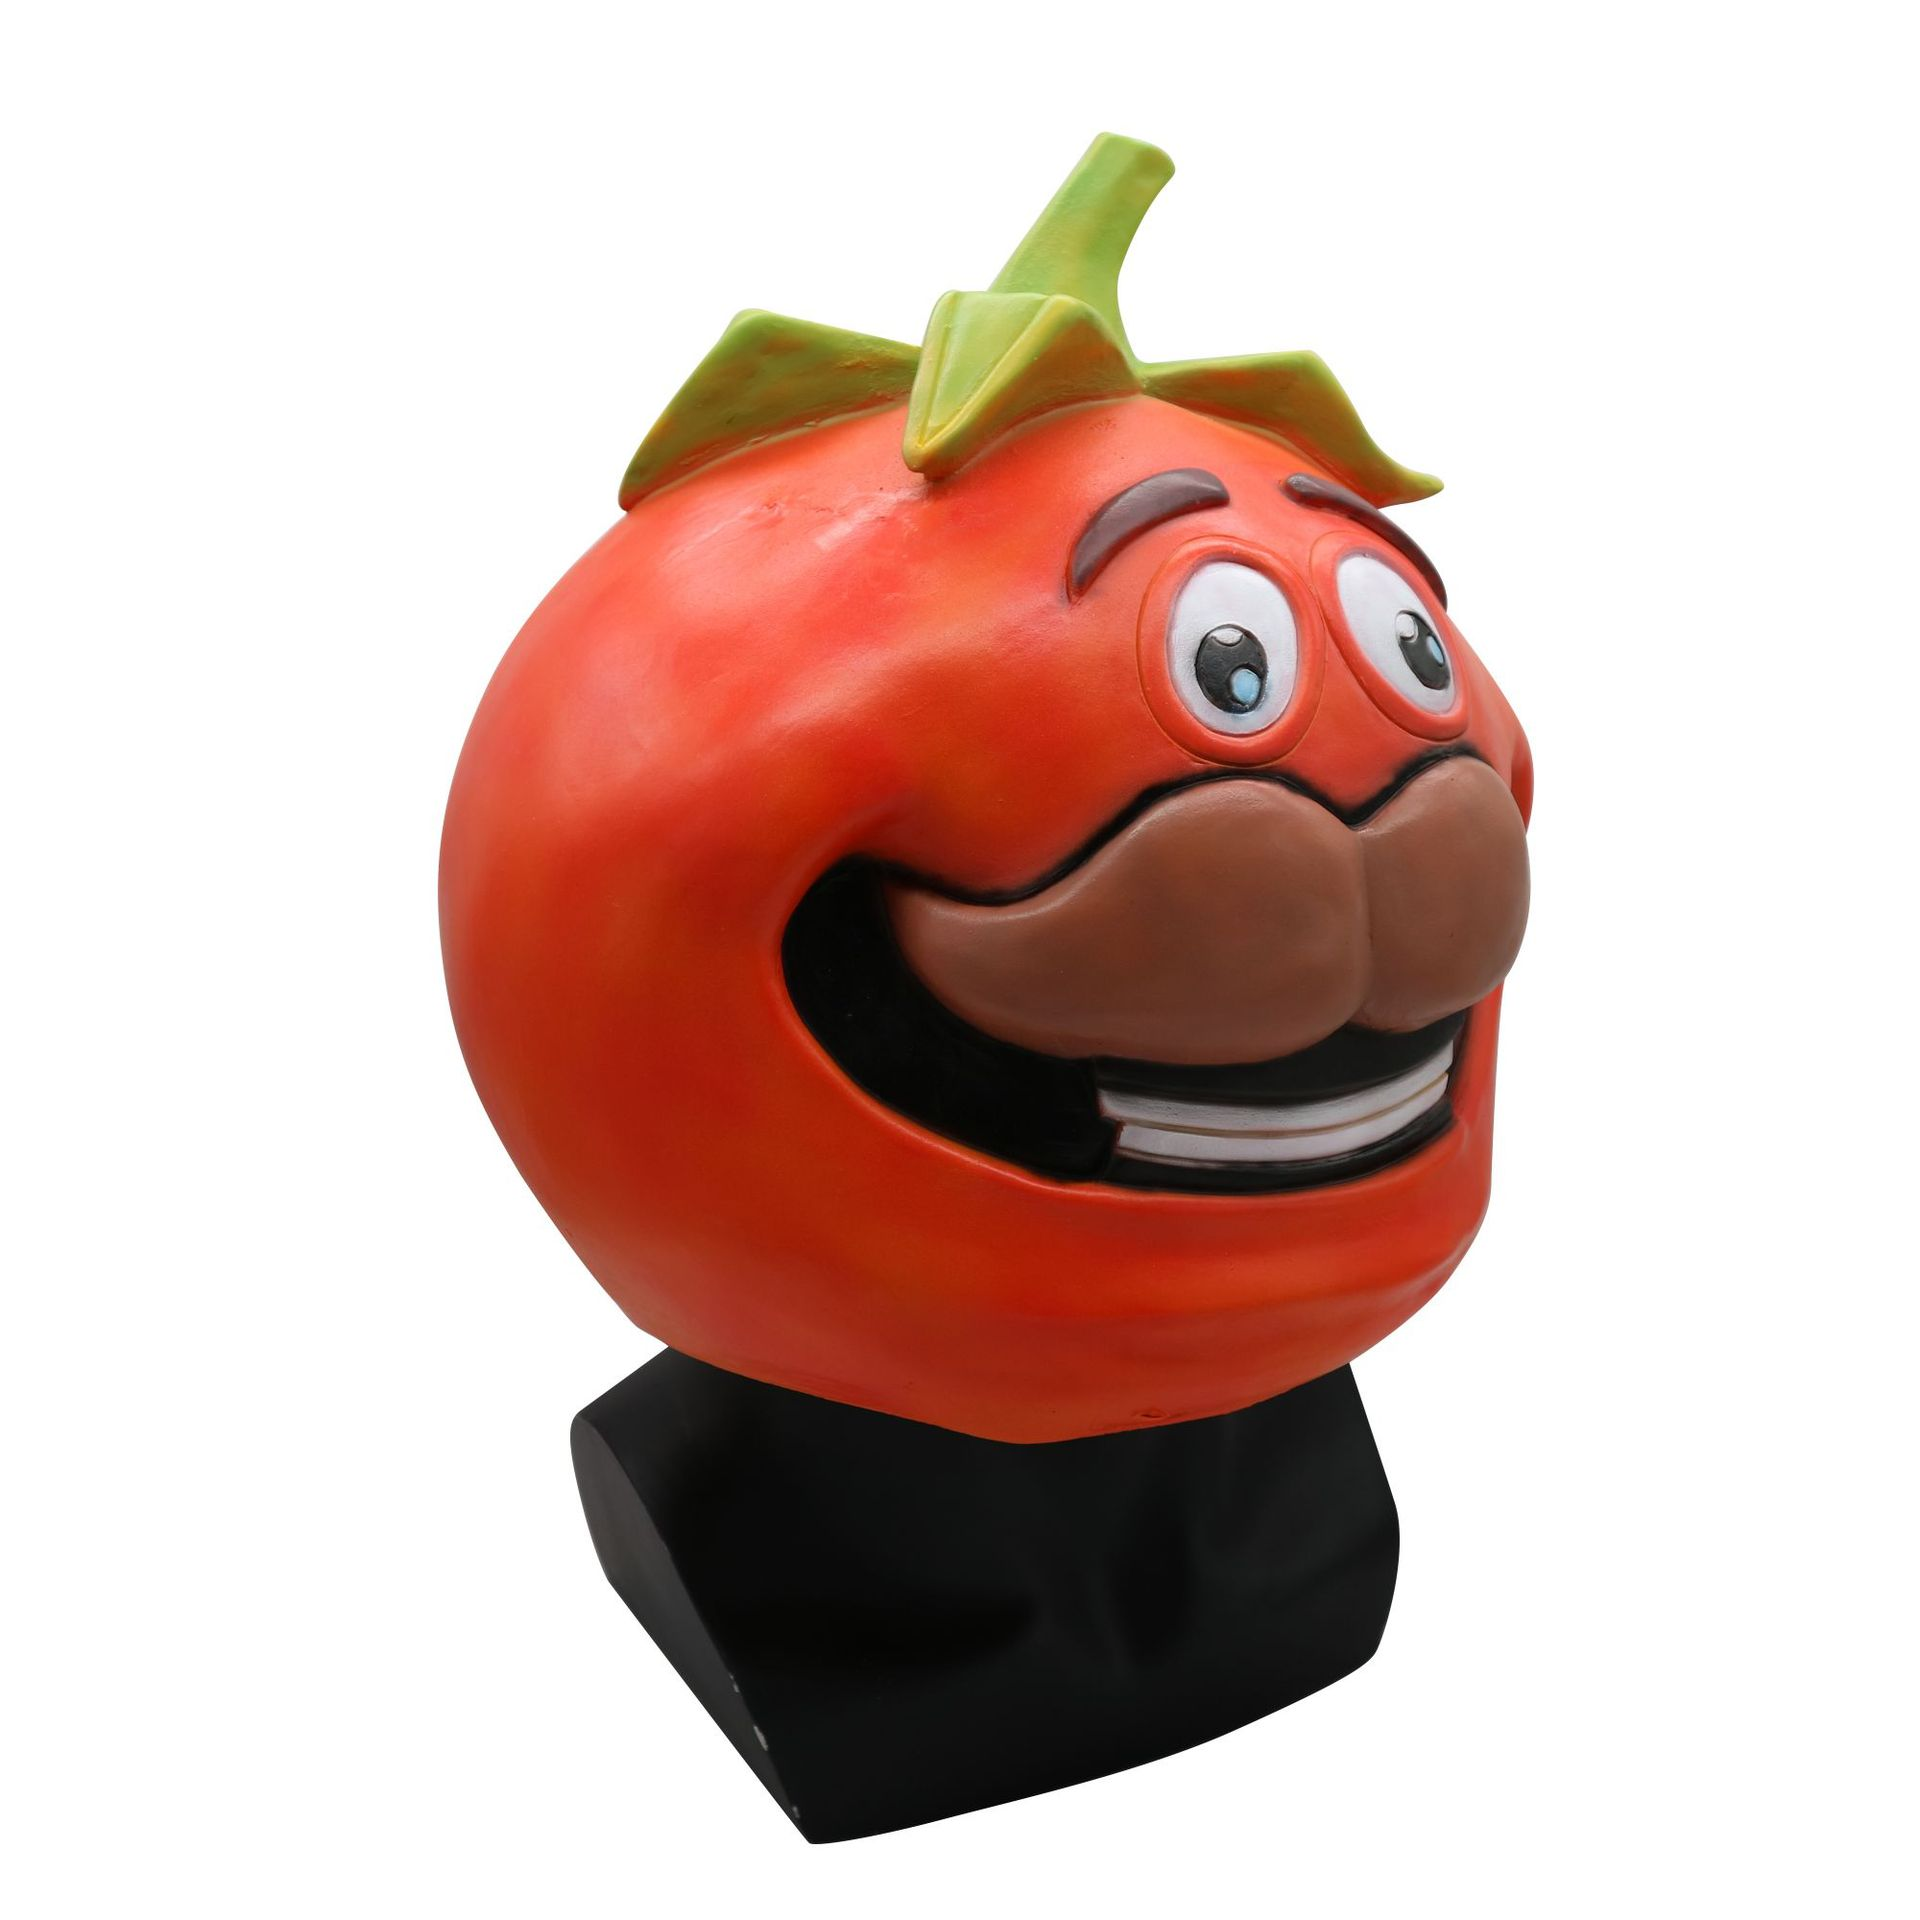 Tomato Mask On Fortress Night Halloween New Headset Cos Game Surrounding Clothing Package Key button Projects Toy Unisex Horror in Gags Practical Jokes from Toys Hobbies